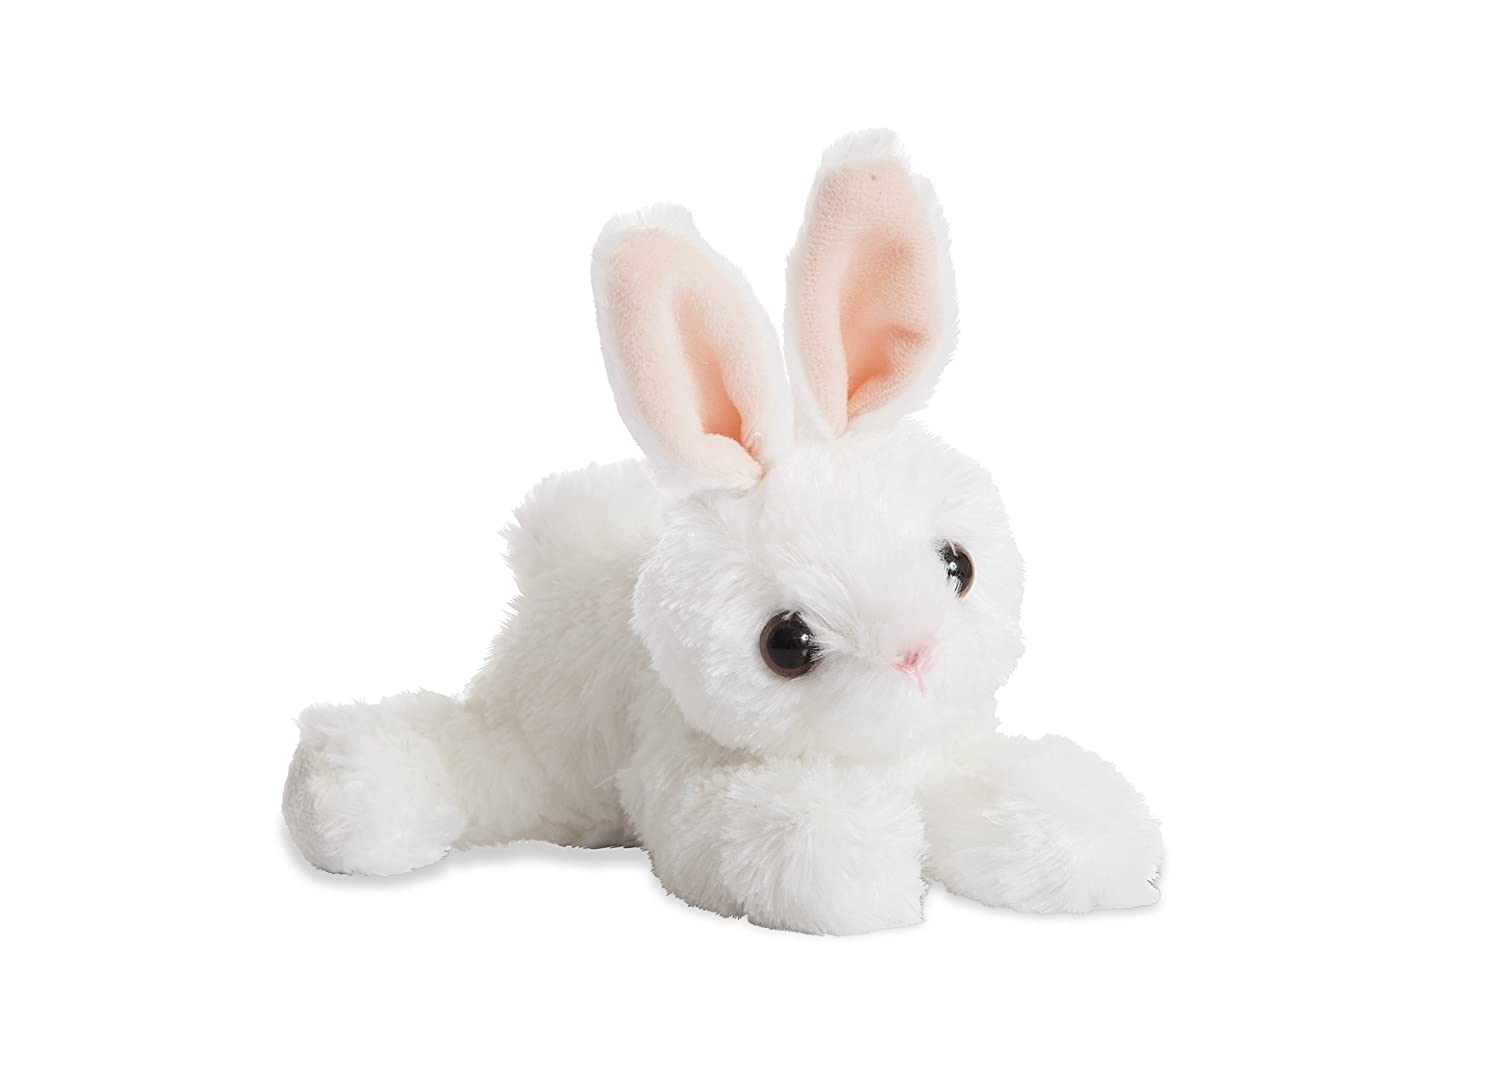 Small Toy Rabbits : Aurora world mini flopsie bunny plush toy white ebay